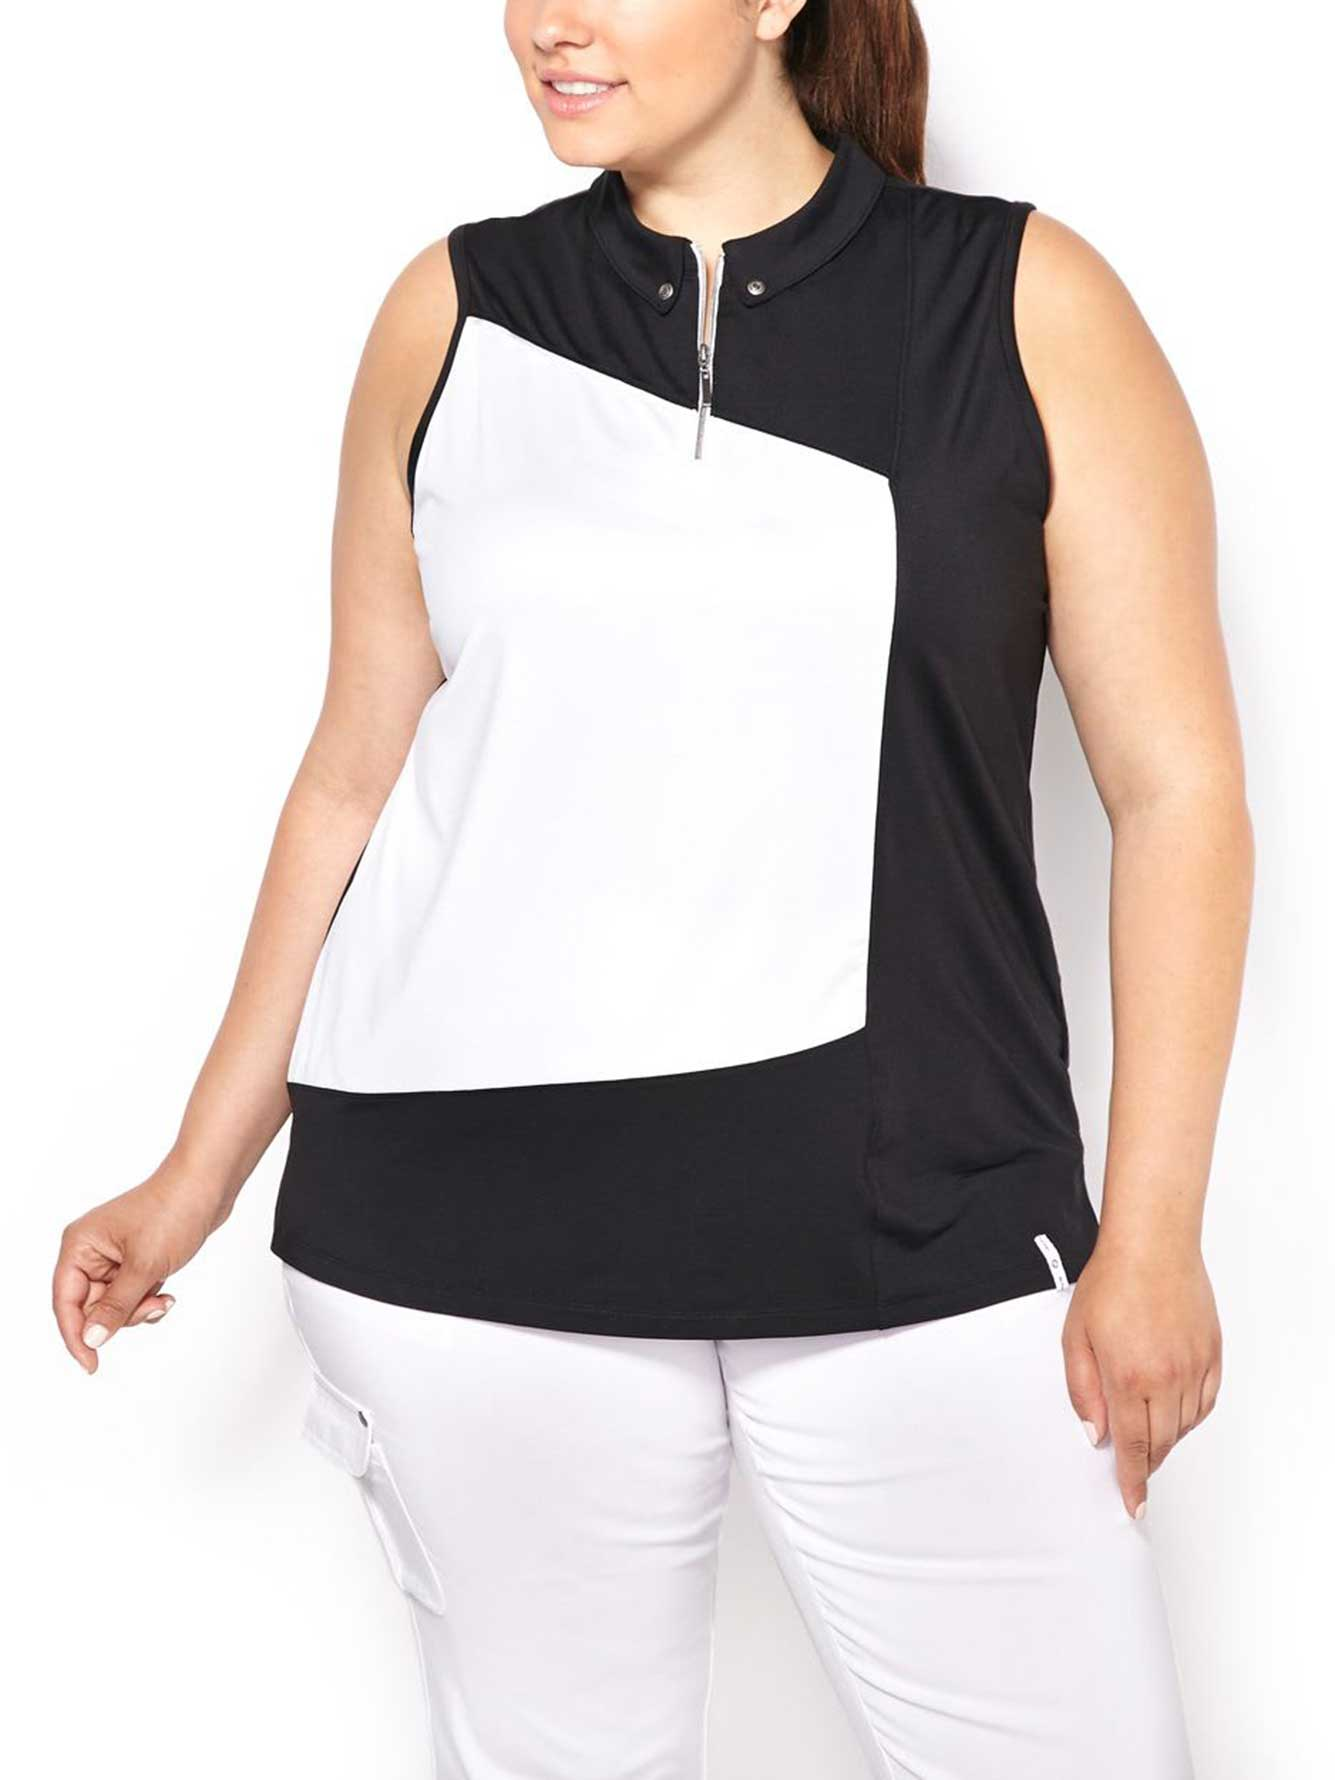 Activezone Golf Sleeveless Plus Size Polo Shirt Penningtons